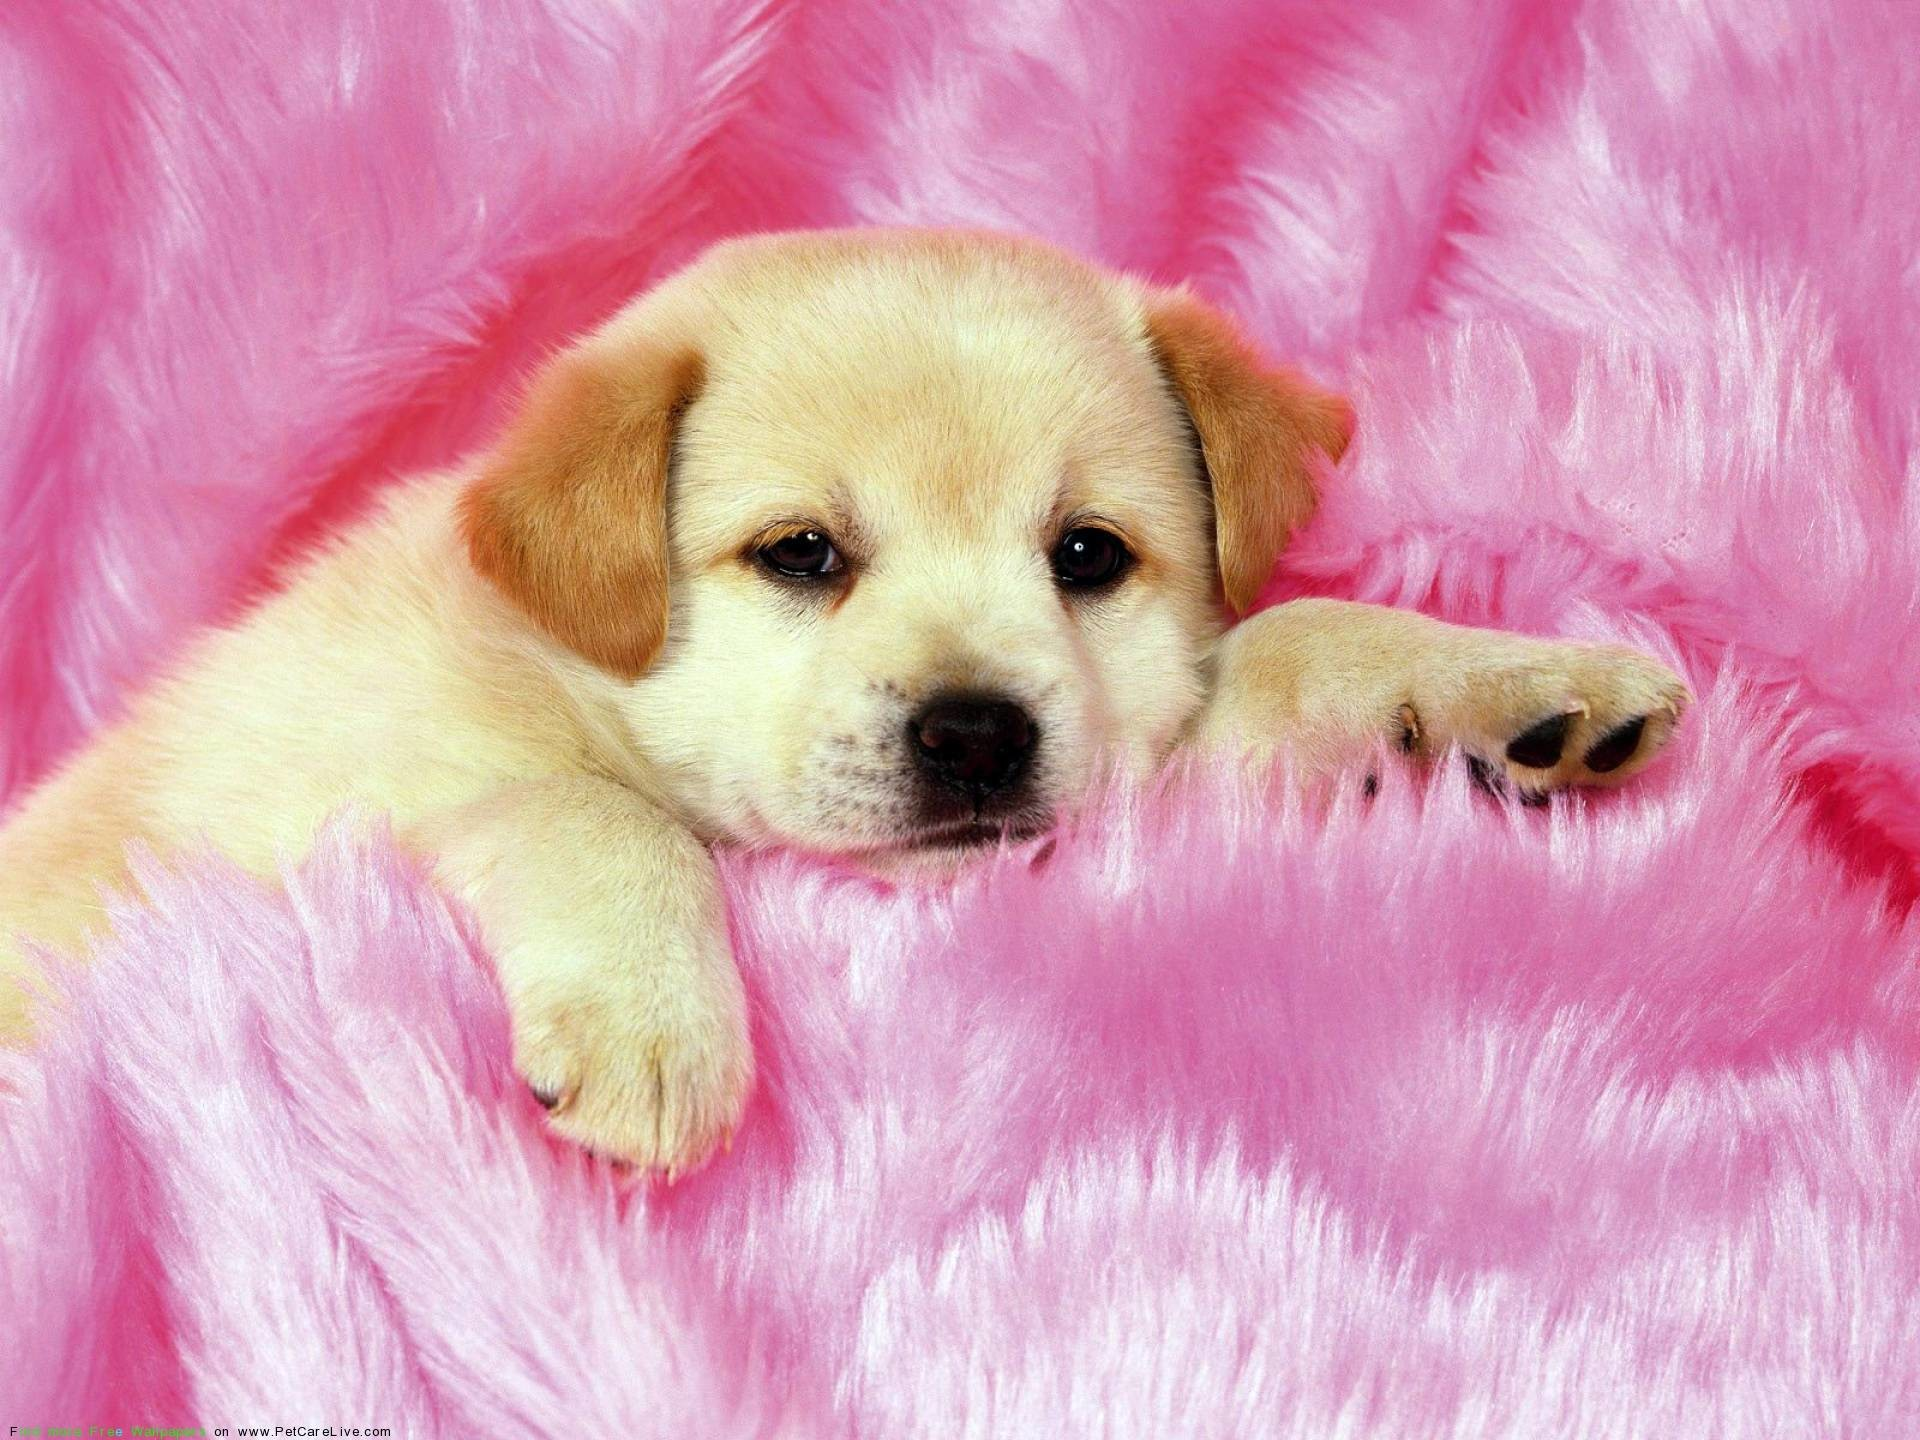 Cute Dogs And Puppies Wallpapers – Wallpaper Cave